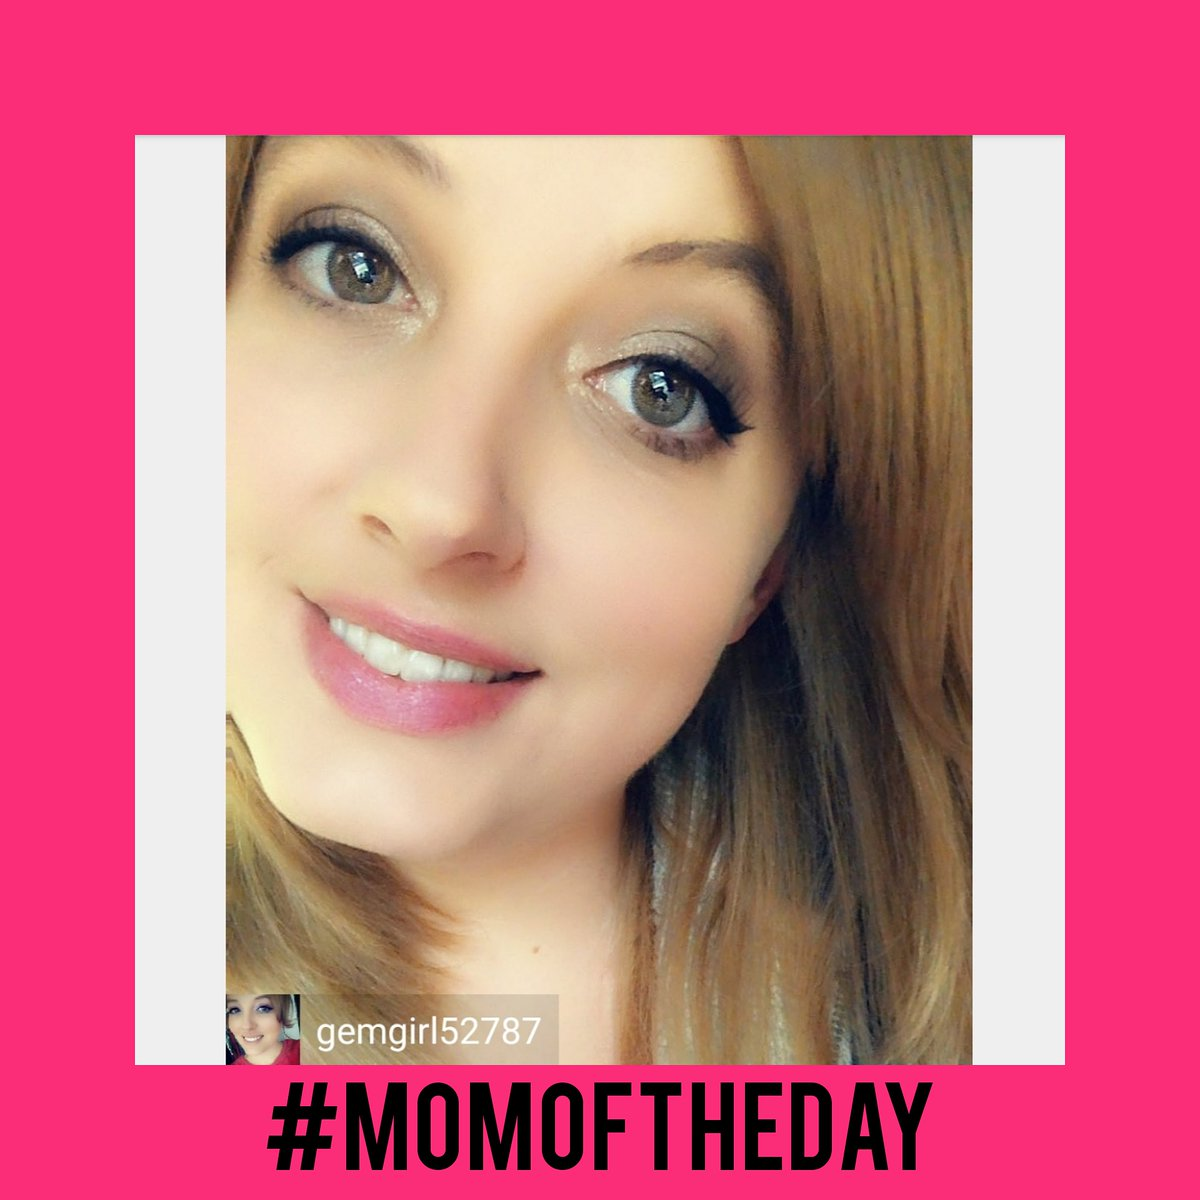 #momoftheday Keep being confident, strong and beautiful! Show this mom some love 💖 @gemgirl52787 What makeup tips do you have for other moms? #mtsm #confident #strong #beautiful  Reposted from @gemgirl52787 #bored #playing #makeup #Snapchat #Snapchatme #likeforlikes  - #regrann